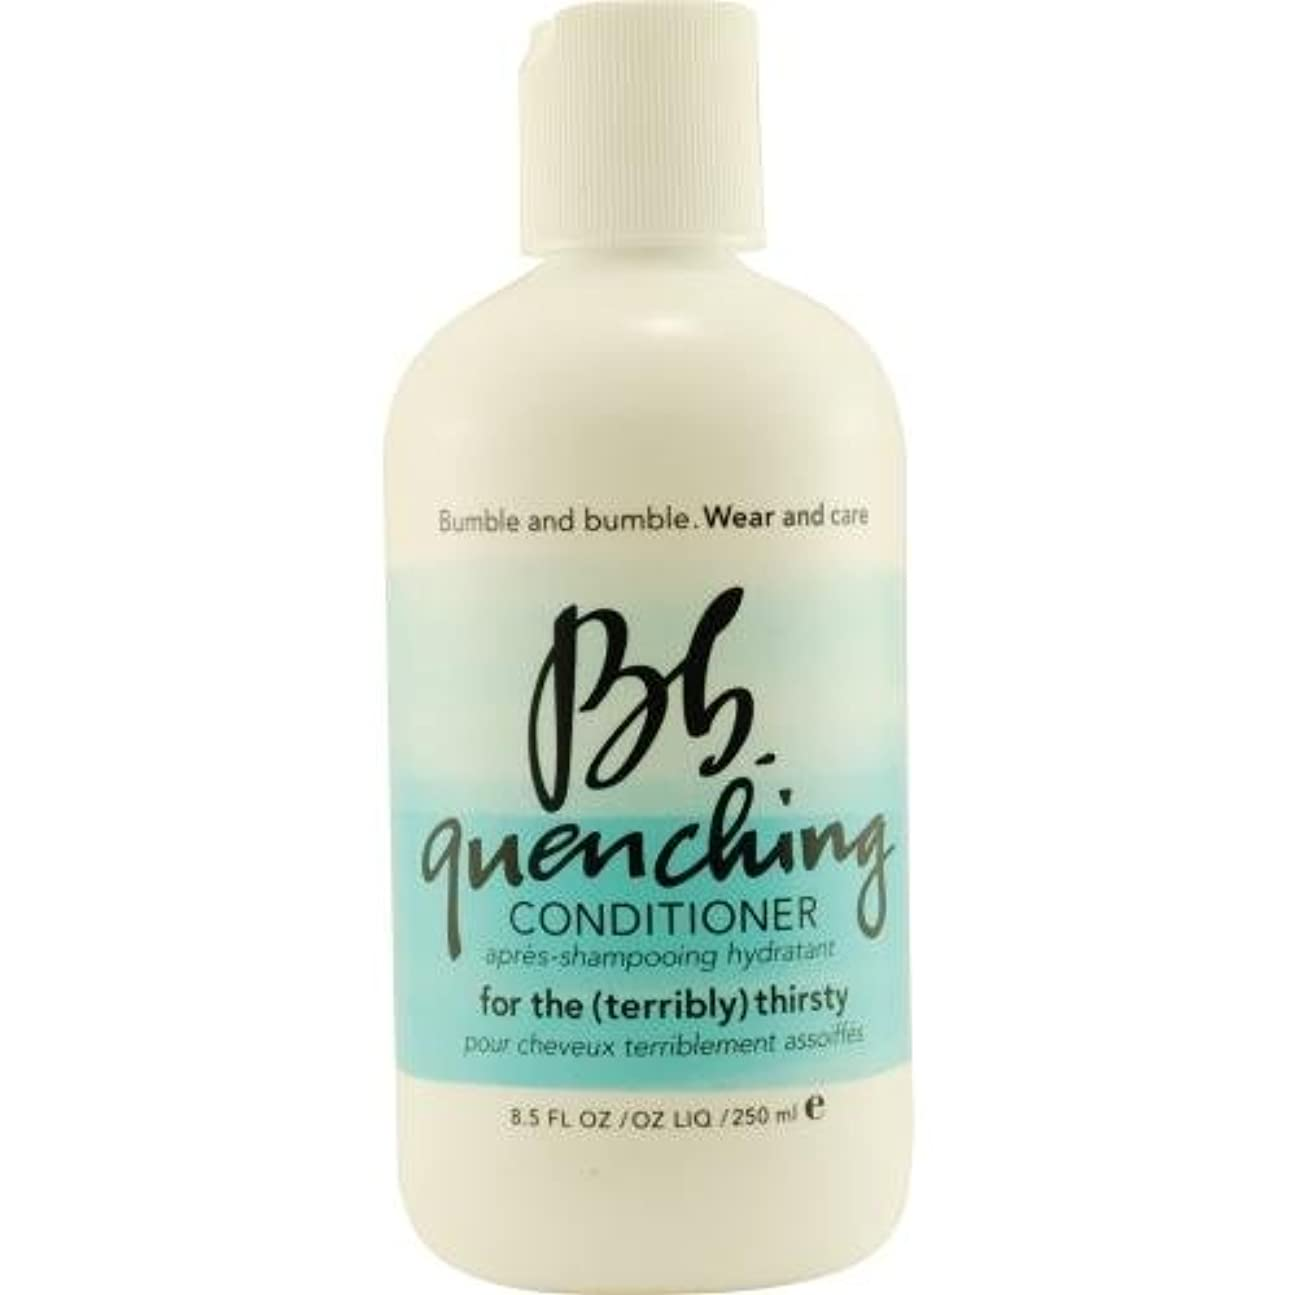 バンブルアンドバンブルQuenching Conditioner (For the Terribly Thirsty Hair) 250ml/8.5oz【海外直送品】